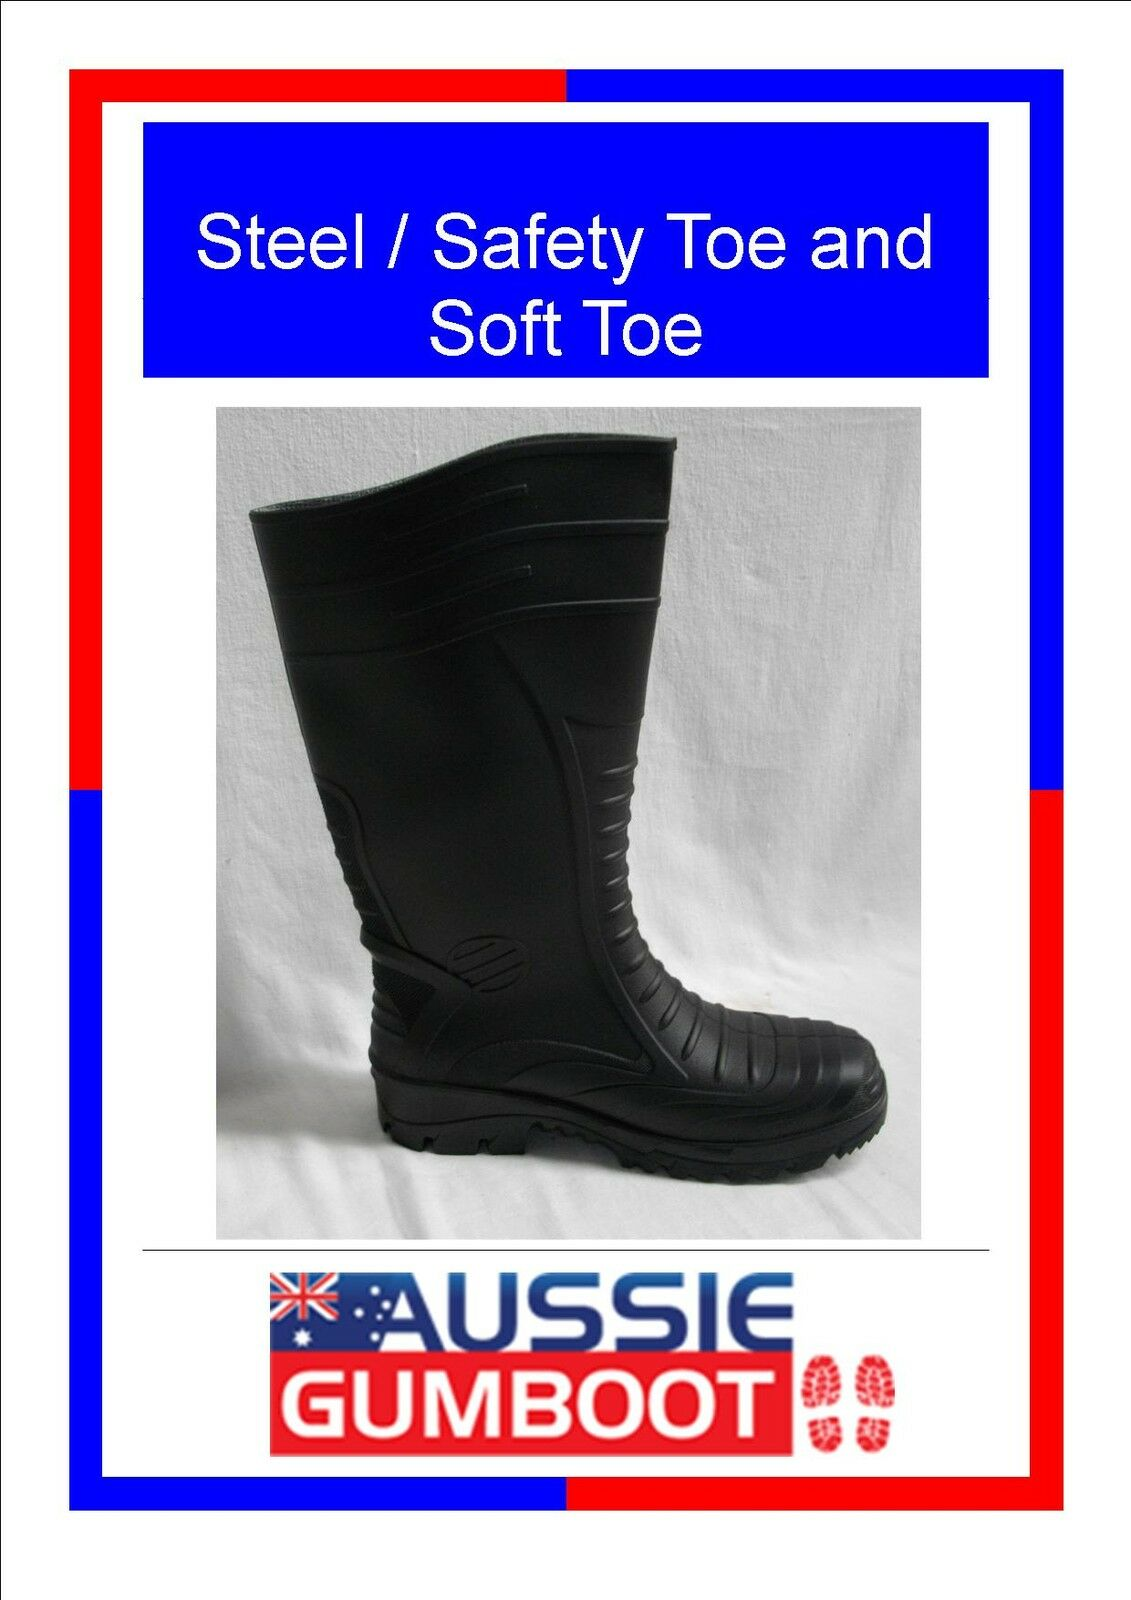 Gumboots Steel / Size Safety Toe Soft Toe Size / 4 5 6 7 8 9 10 11 12 13 Ladies Mens d0bd43